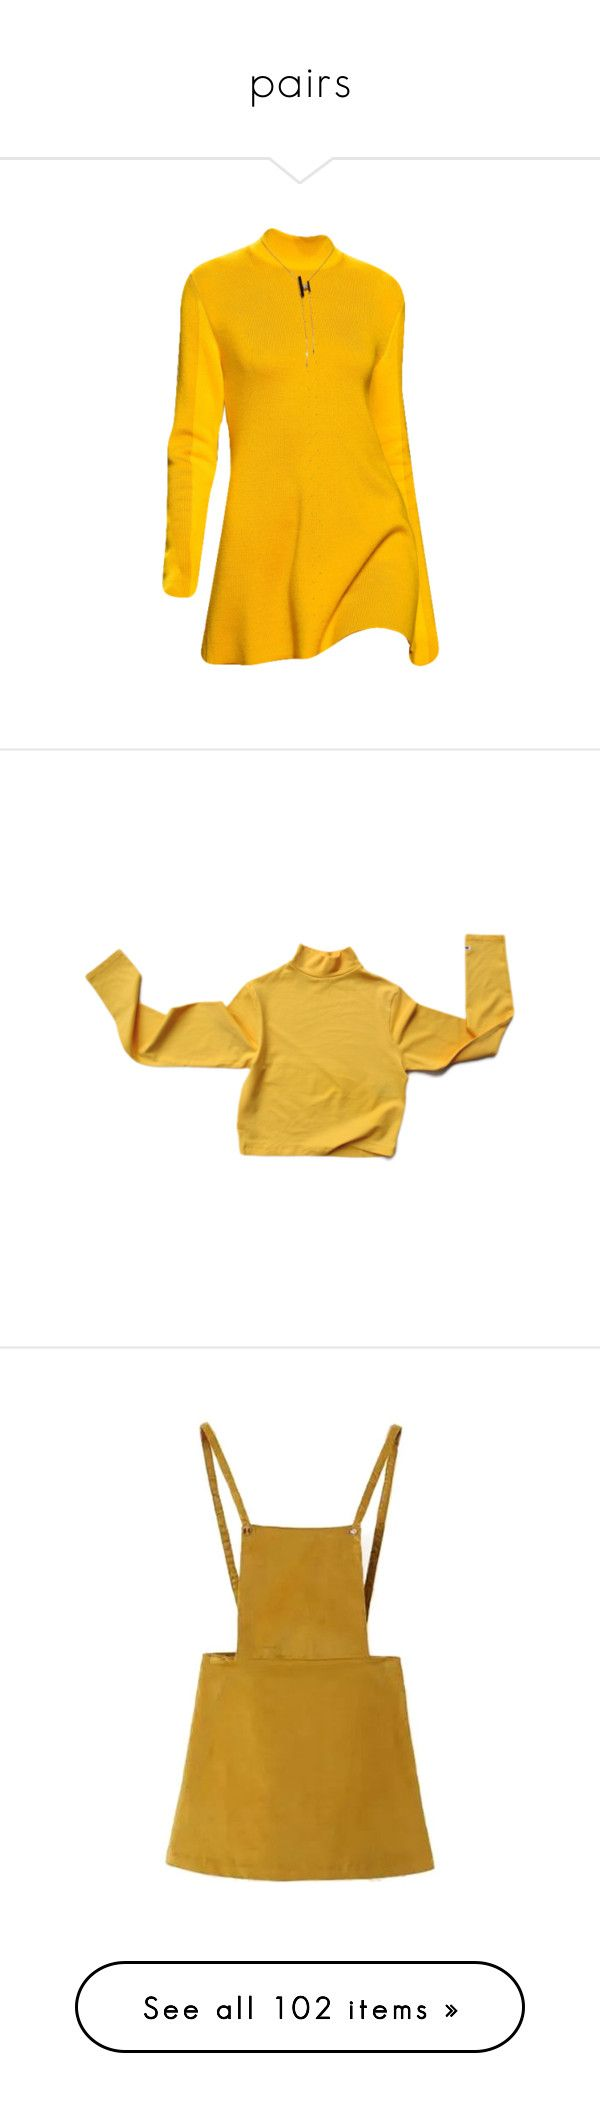 """""""pairs"""" by rojinnn ❤ liked on Polyvore featuring dresses, yellow, yellow dress, tops, shirts, sweaters, long sleeves, yellow long sleeve top, extra long sleeve shirts and brown shirt"""